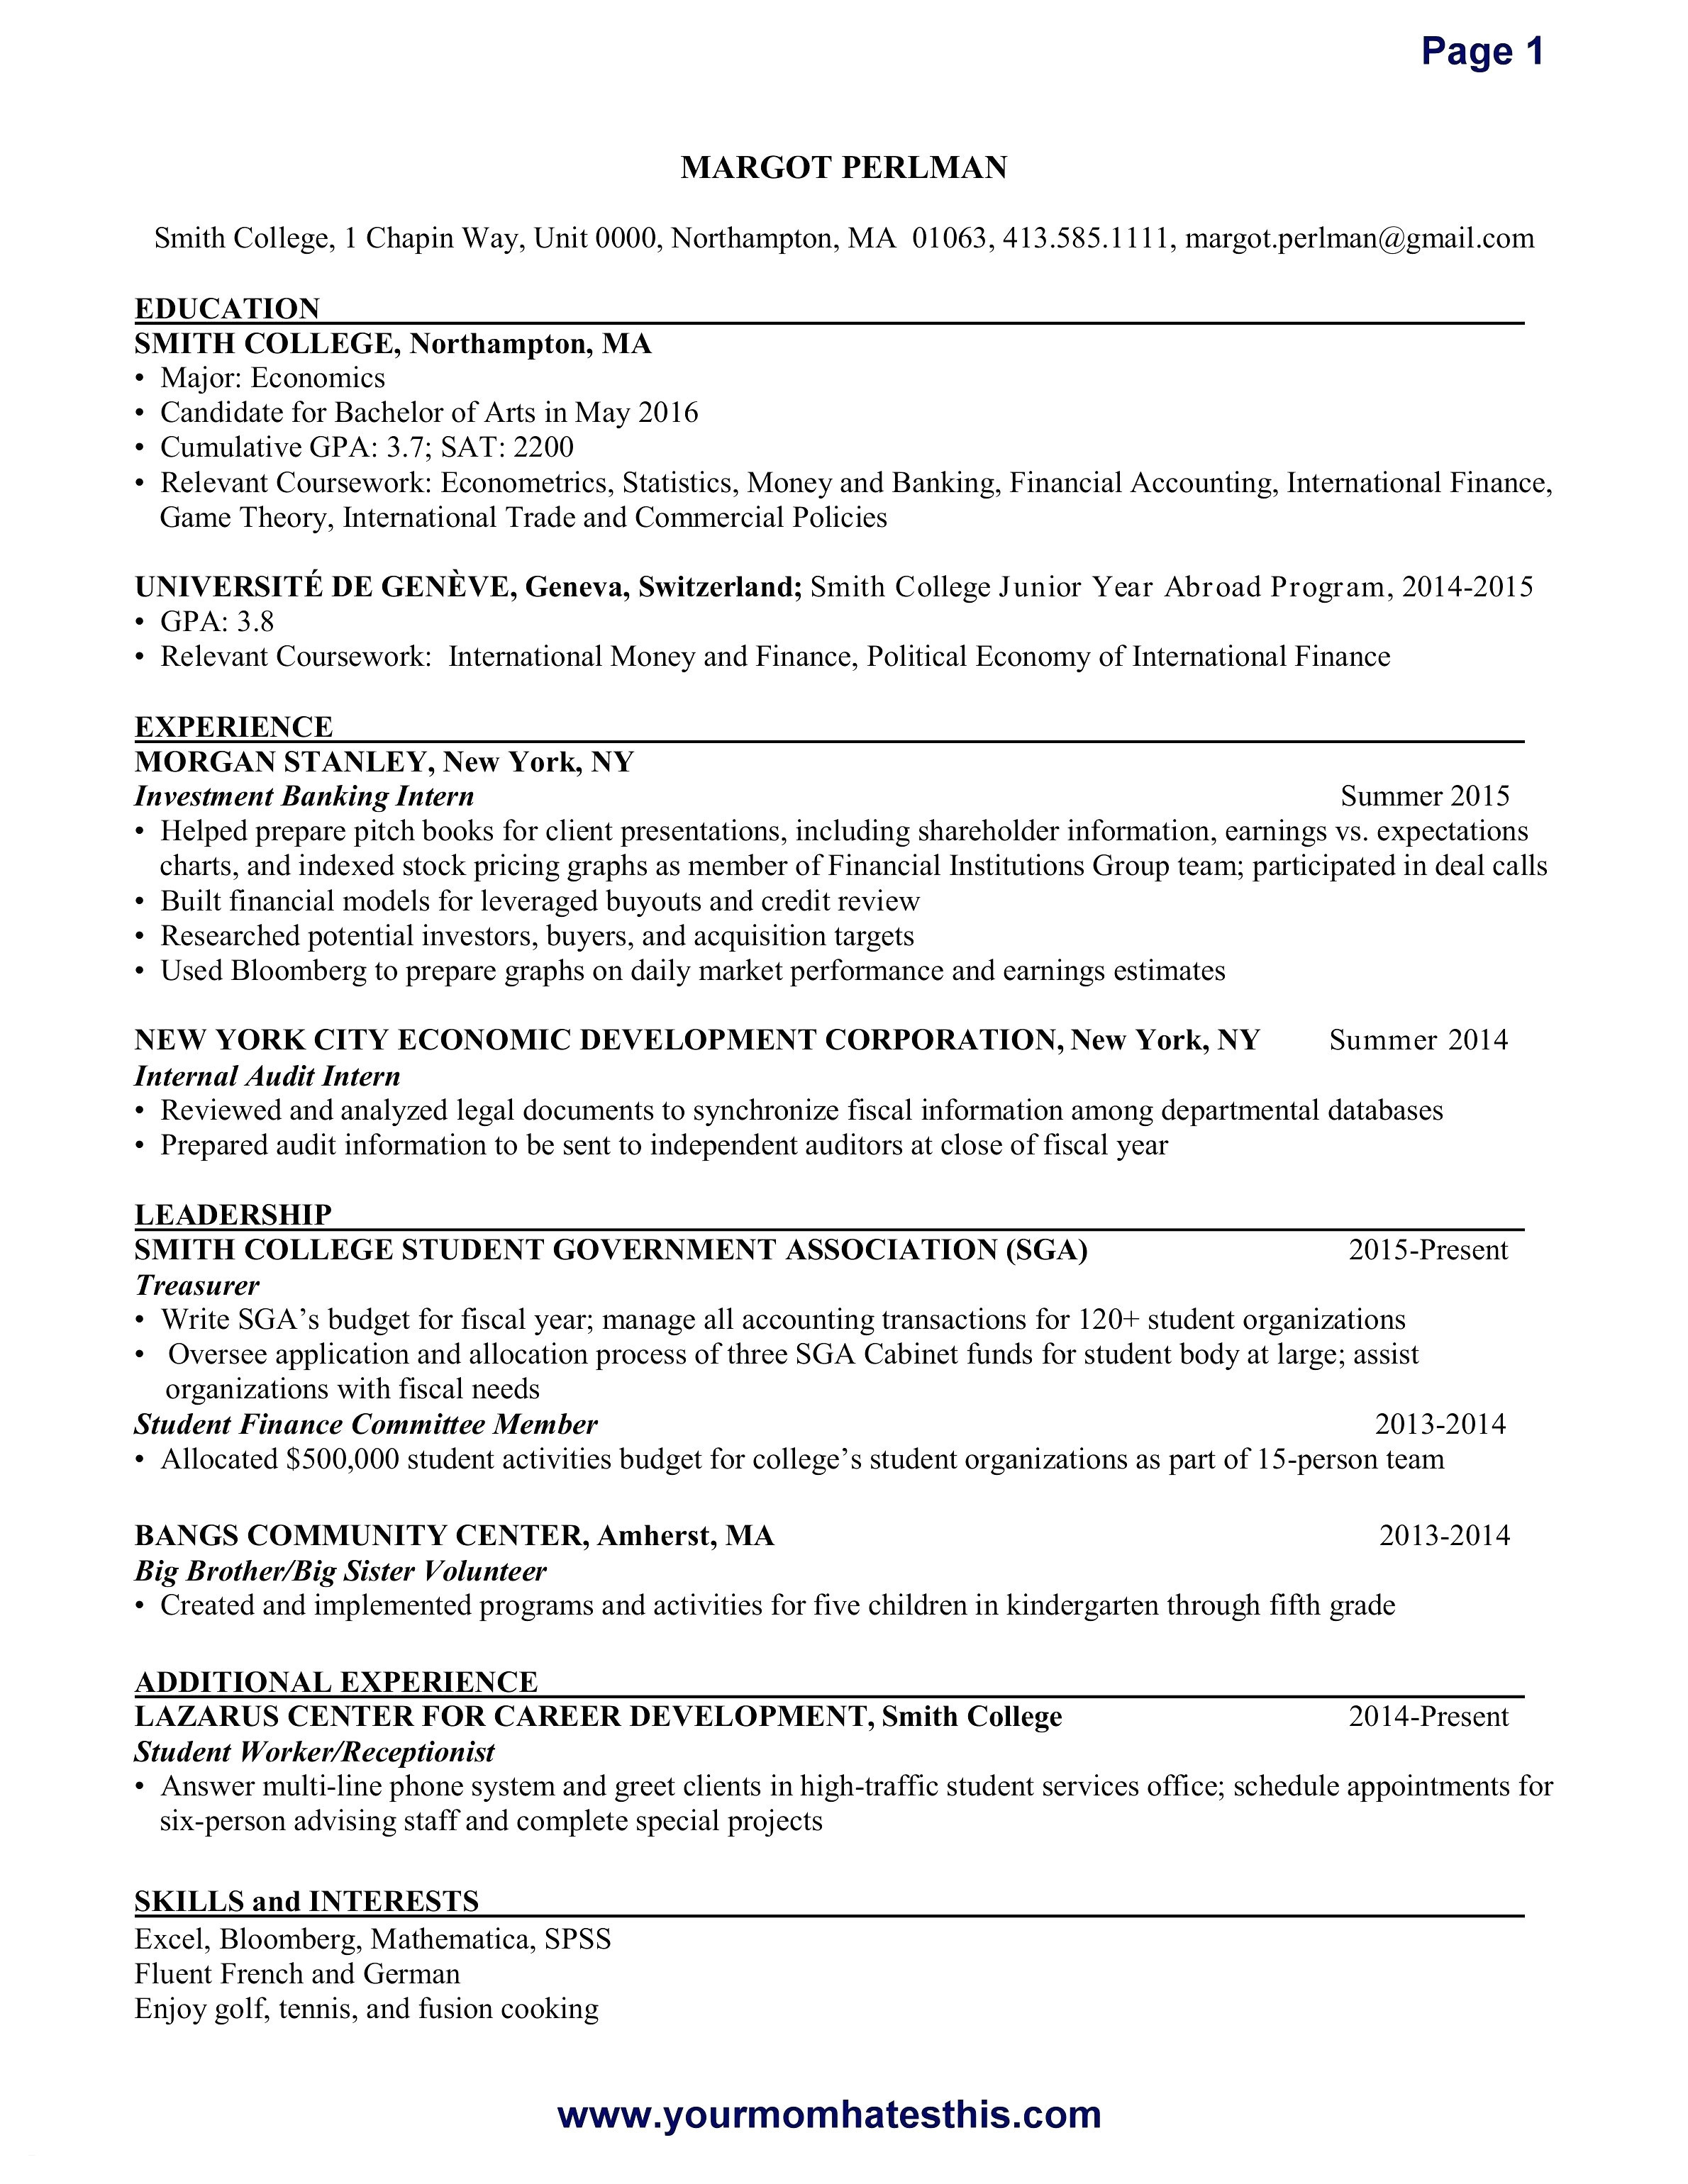 Security Guard Resume Skills - Awesome Security Ficer Resume Sample